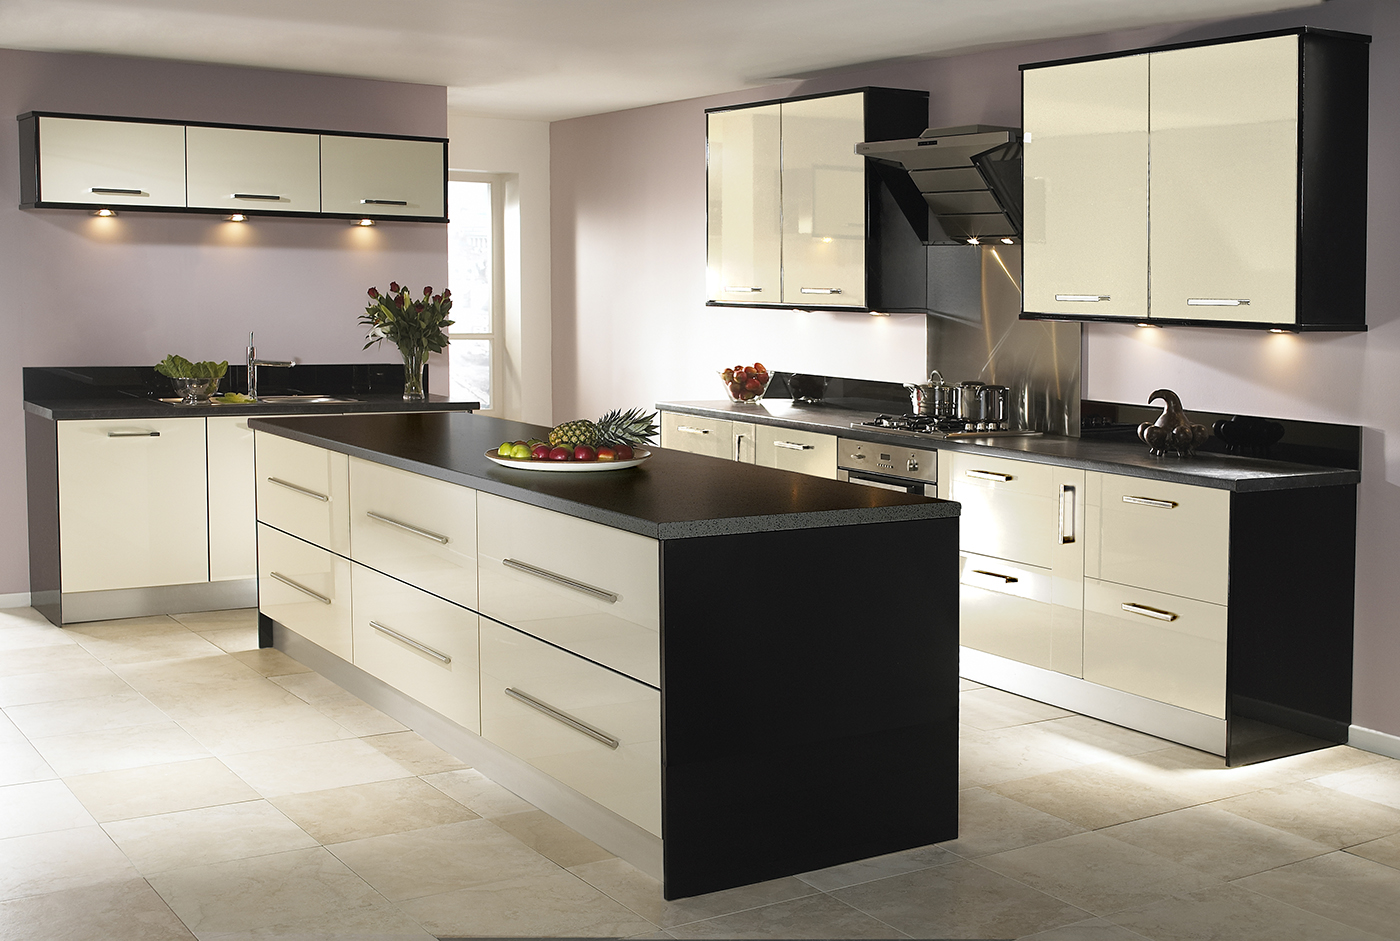 Kutchentechnik designer kitchens fitted kitchen for Kitchen ideas uk 2015